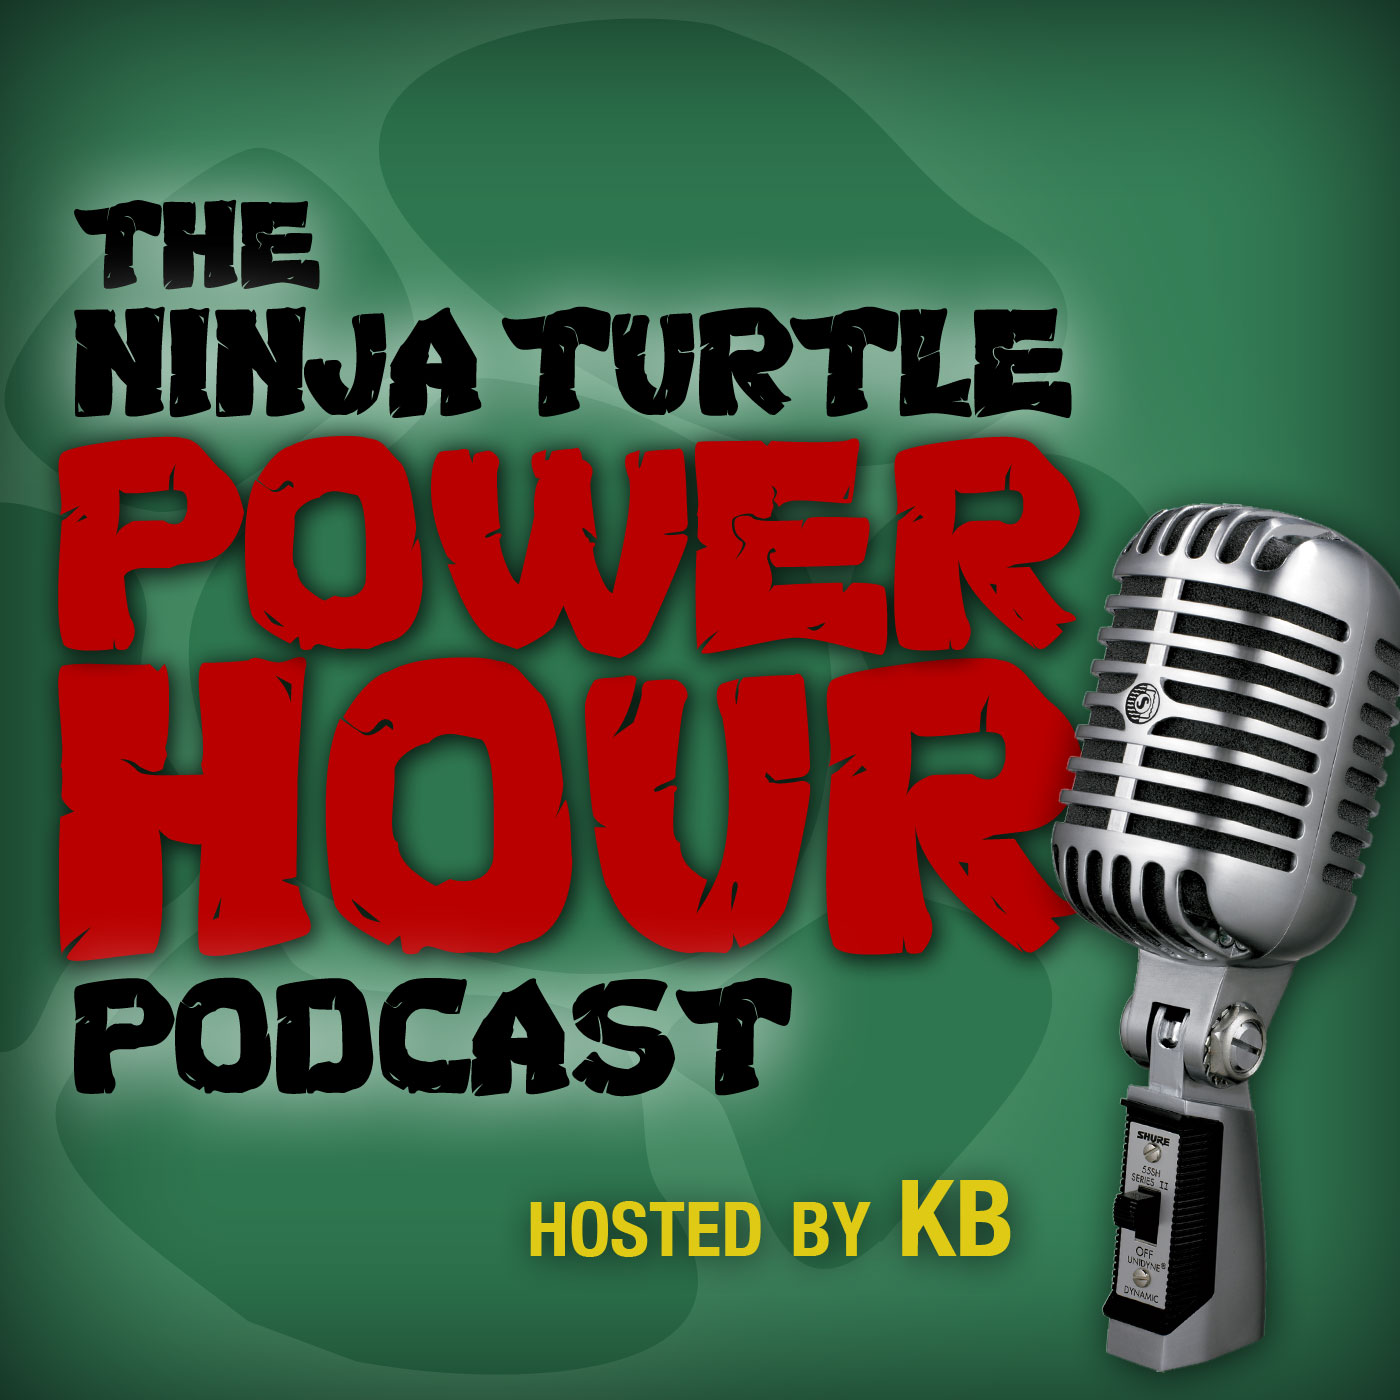 The Ninja Turtle Power Hour!